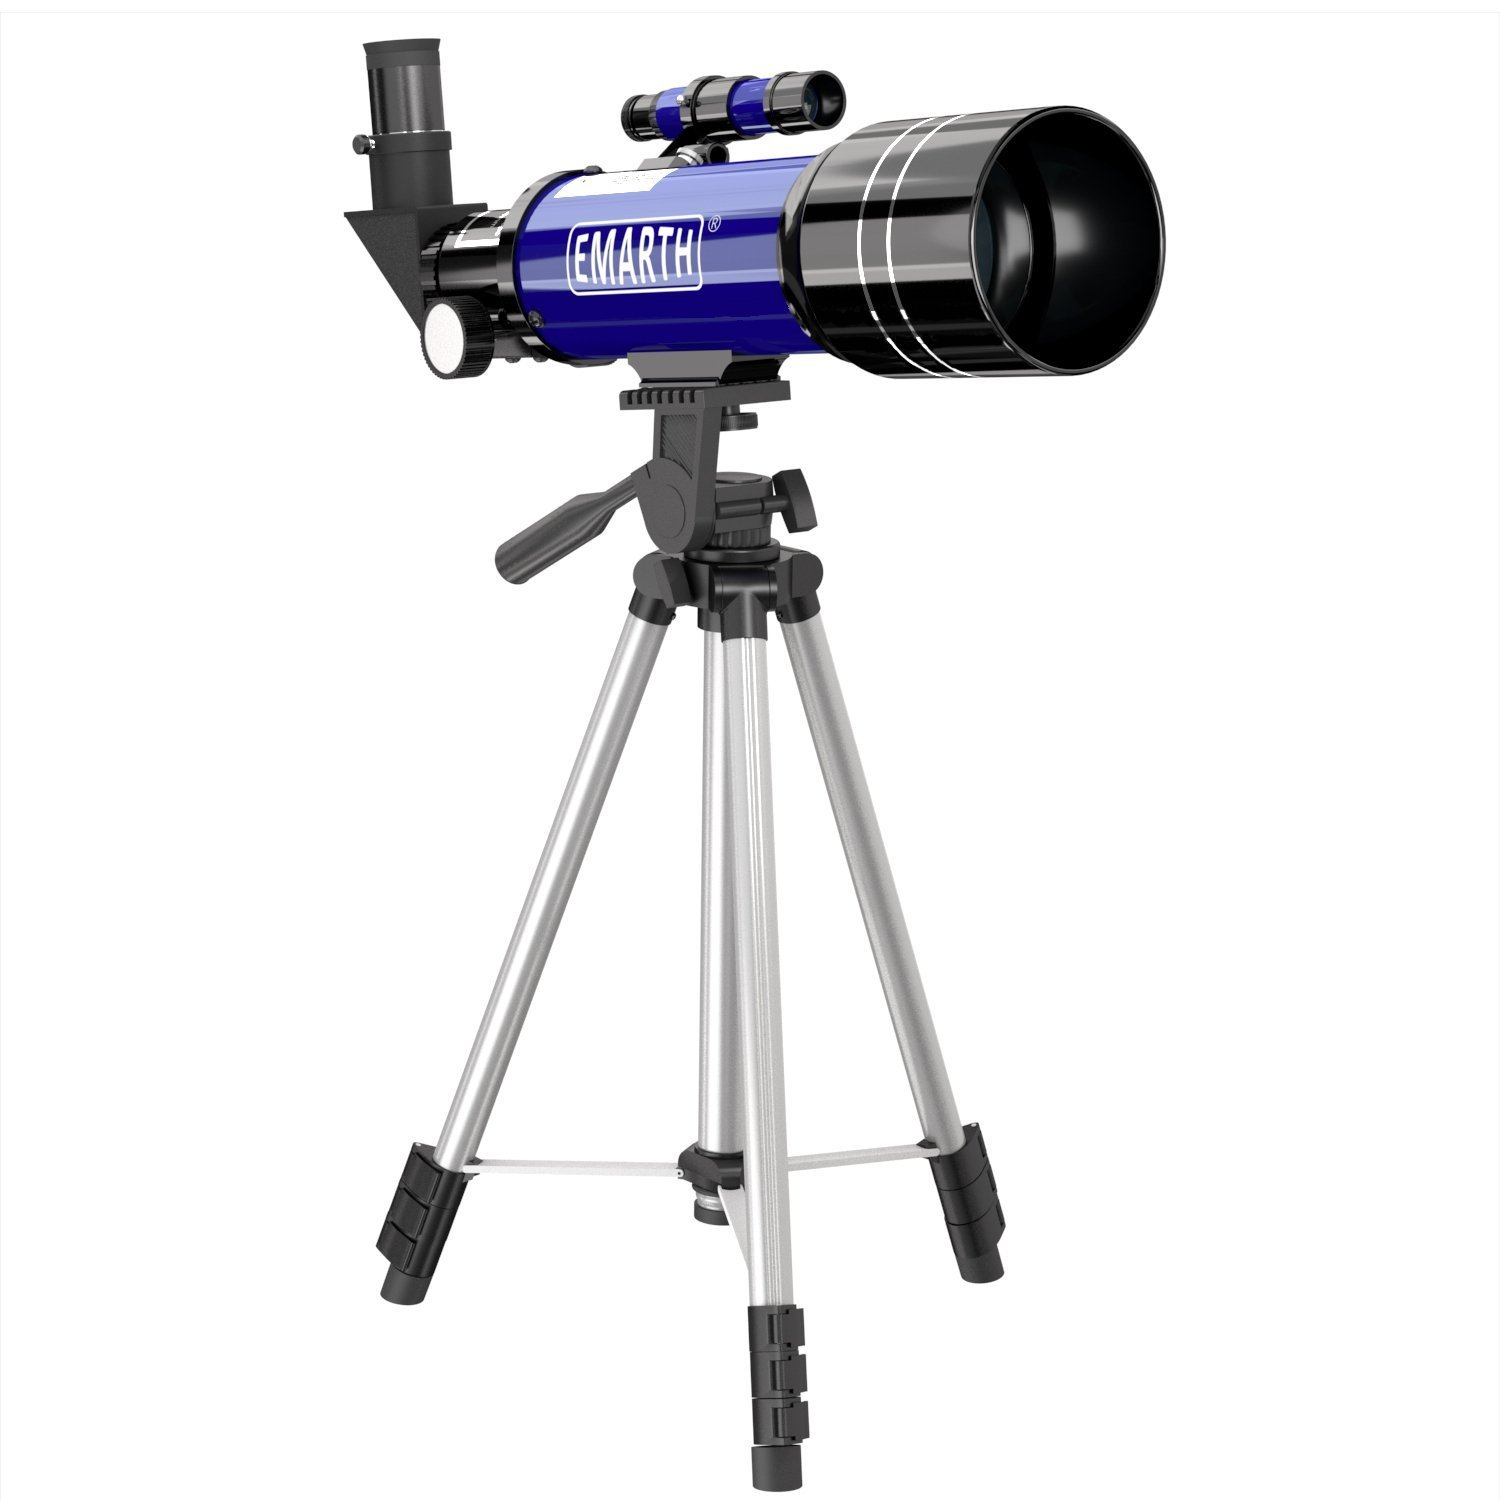 Emarth Telescopes for Astronomy Beginners Telescope for Kids Refracter Telescope with Tripod & Finder Scope